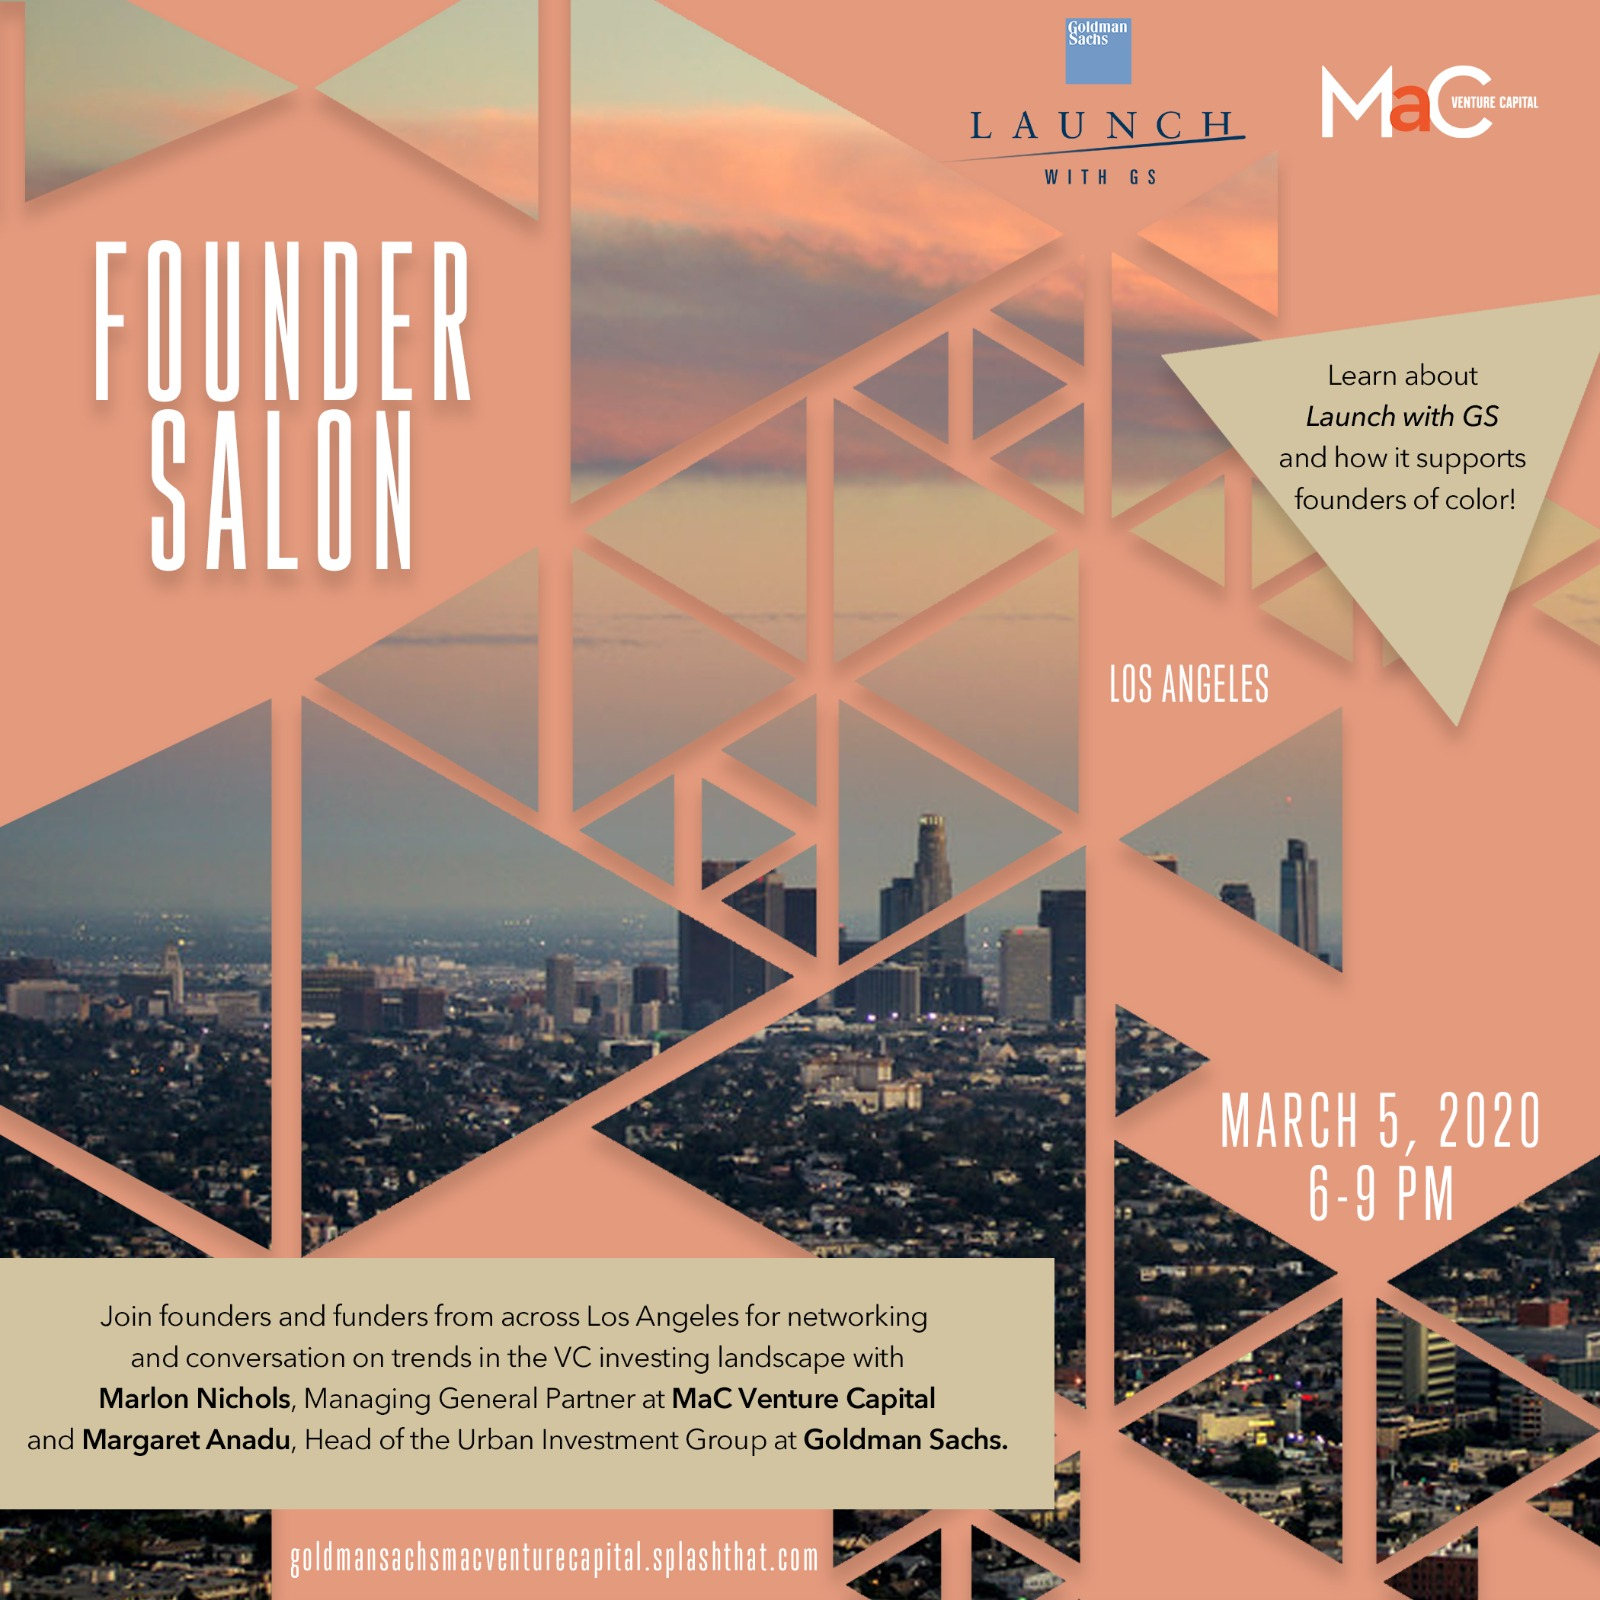 MaC Venture Capital and Goldman Sachs' Launch With GS Invite You: Founder Salon, Los Angeles